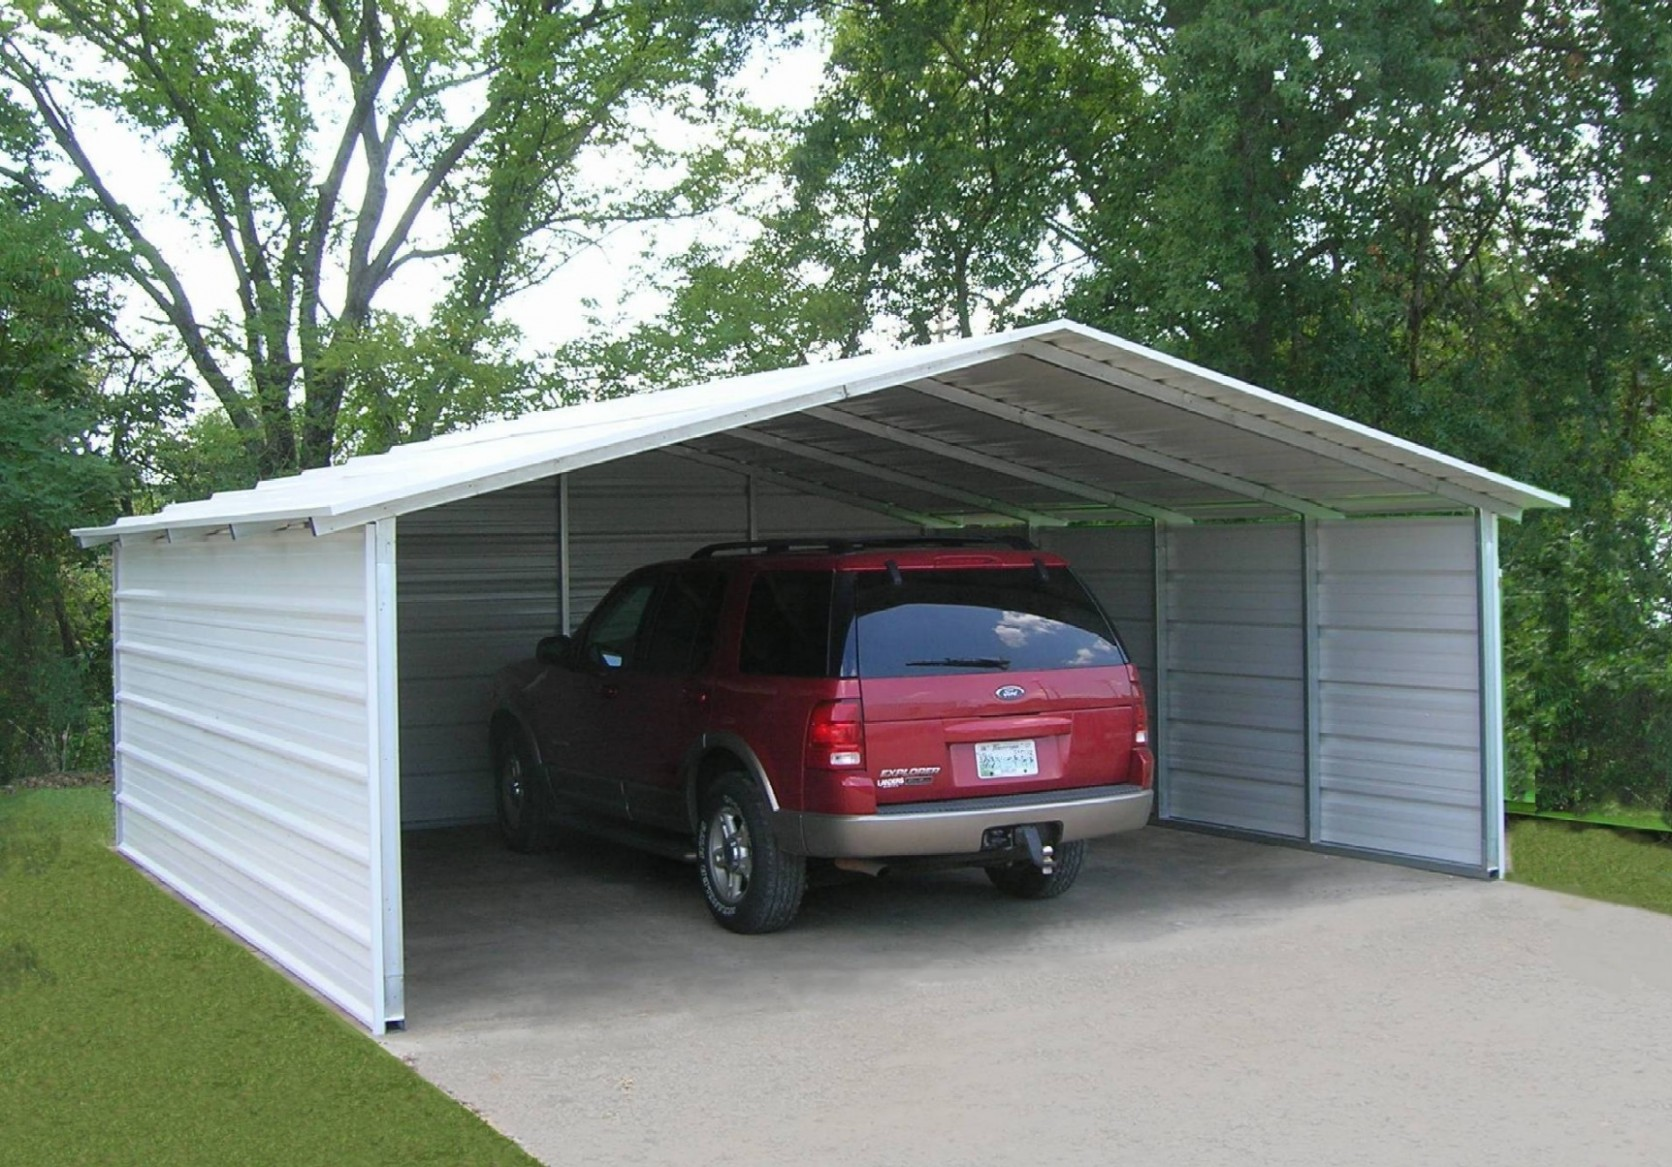 Seven Fantastic Vacation Ideas For Portable Double Carport | portable double carport